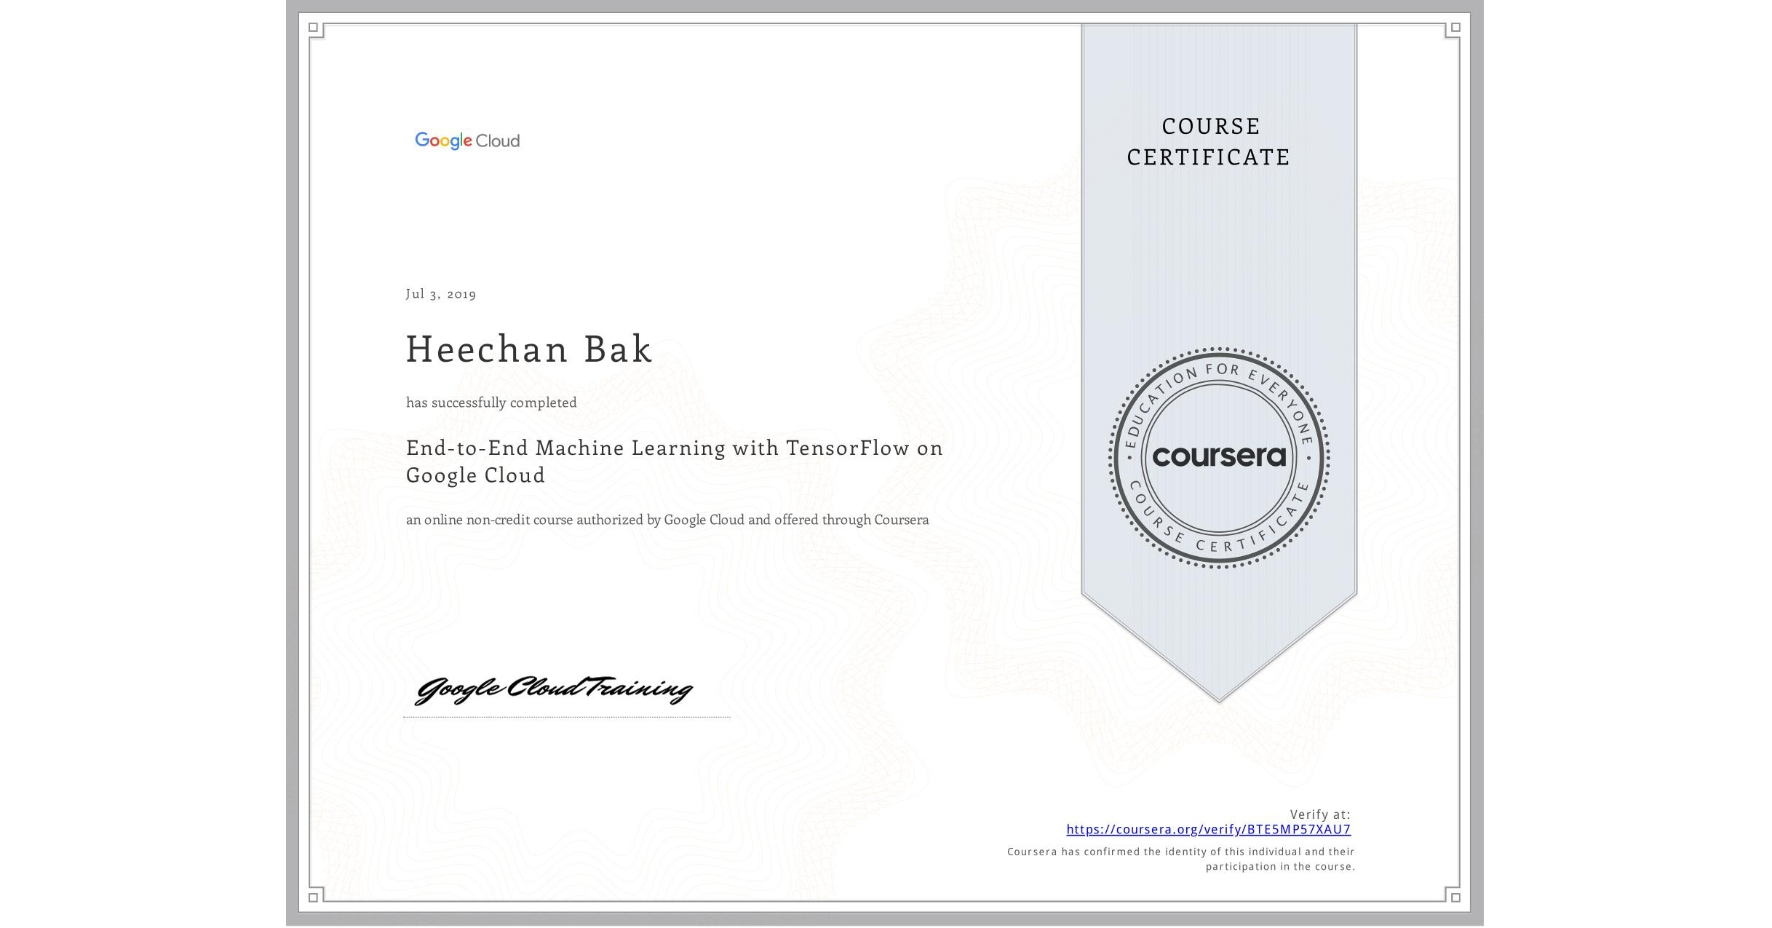 View certificate for Heechan Bak, End-to-End Machine Learning with TensorFlow on GCP, an online non-credit course authorized by Google Cloud and offered through Coursera